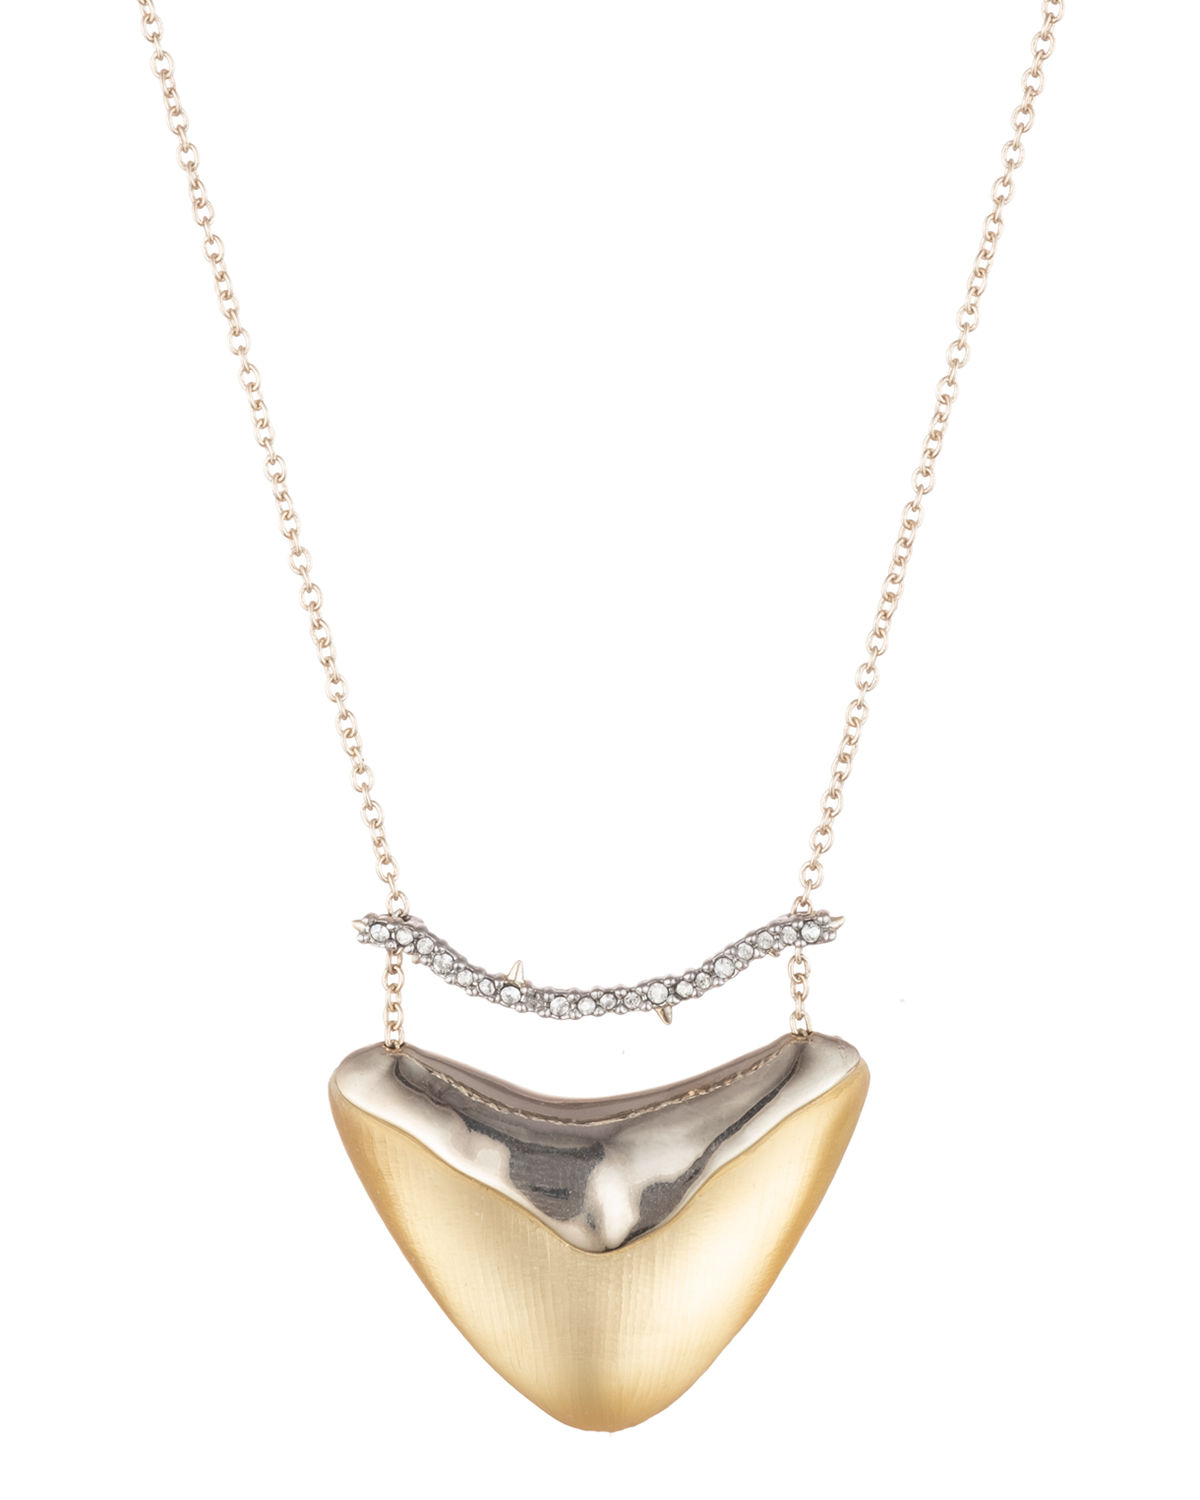 Alexis Bittar Accessories CRYSTAL ENCRUSTED BAR & SHIELD PENDANT NECKLACE